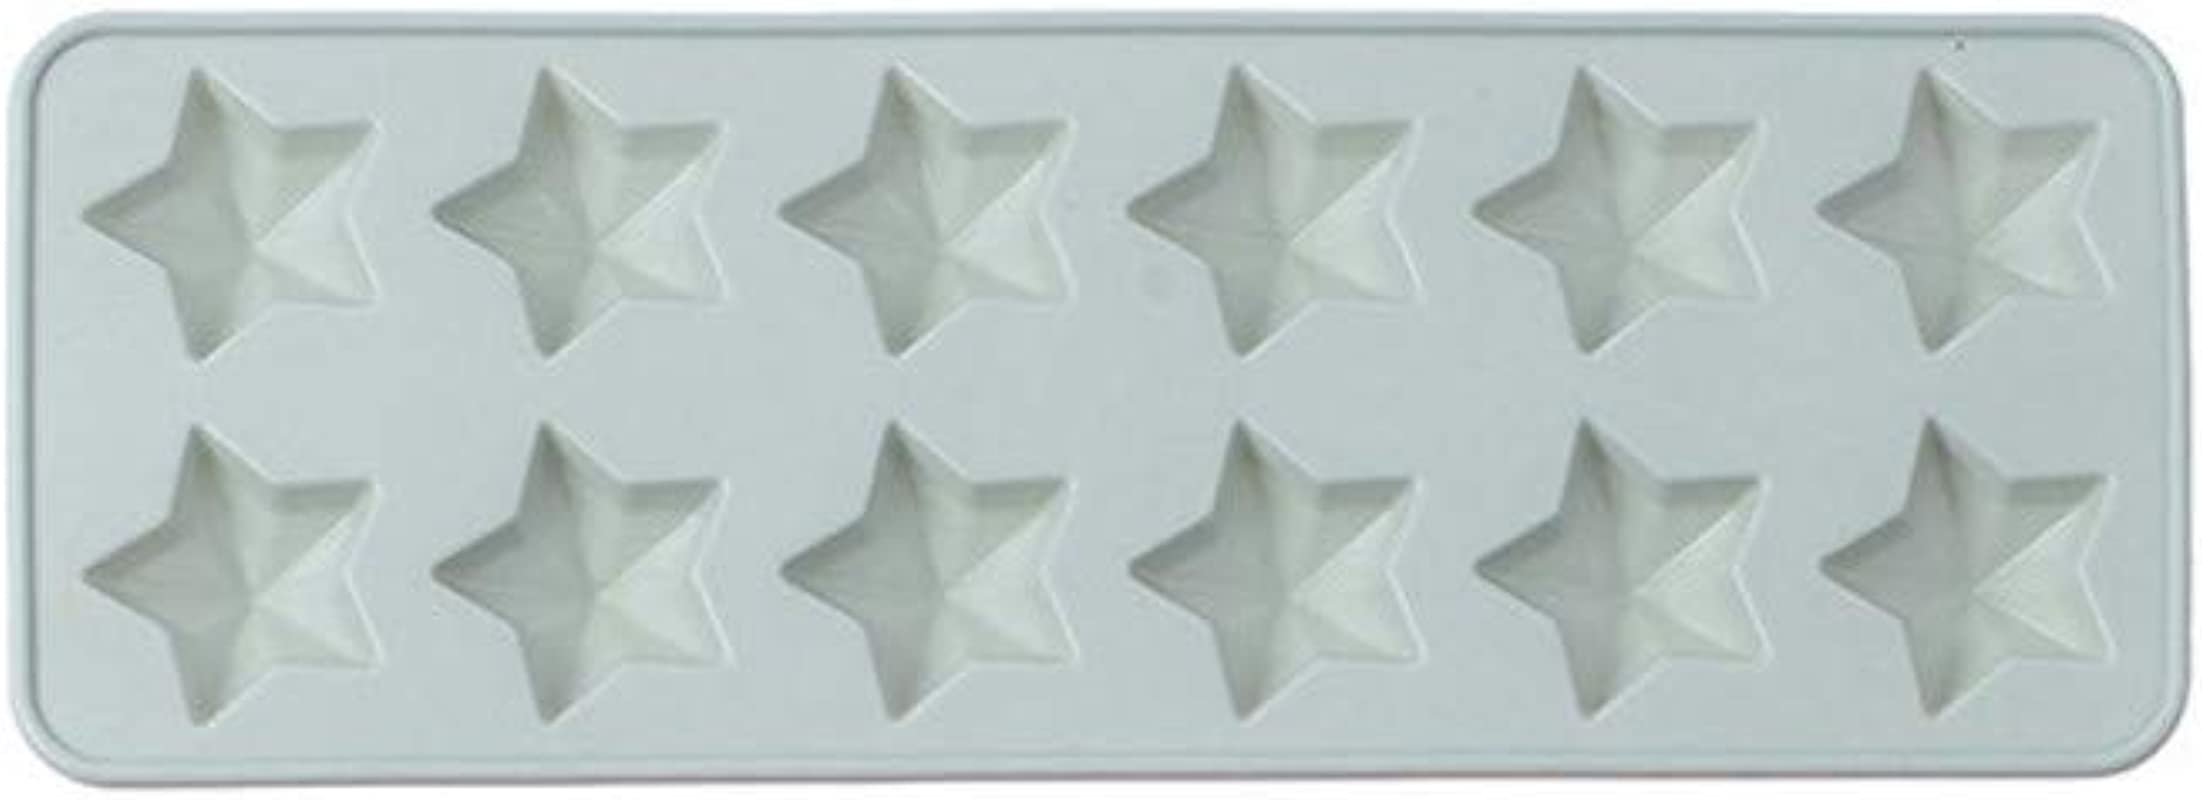 Graysky Silicone Cake 12 Cavity Pentagram Molds Cake Non Stick Baking Tray Ice Cub Pans Cookie Chocolate Cupcake Mould